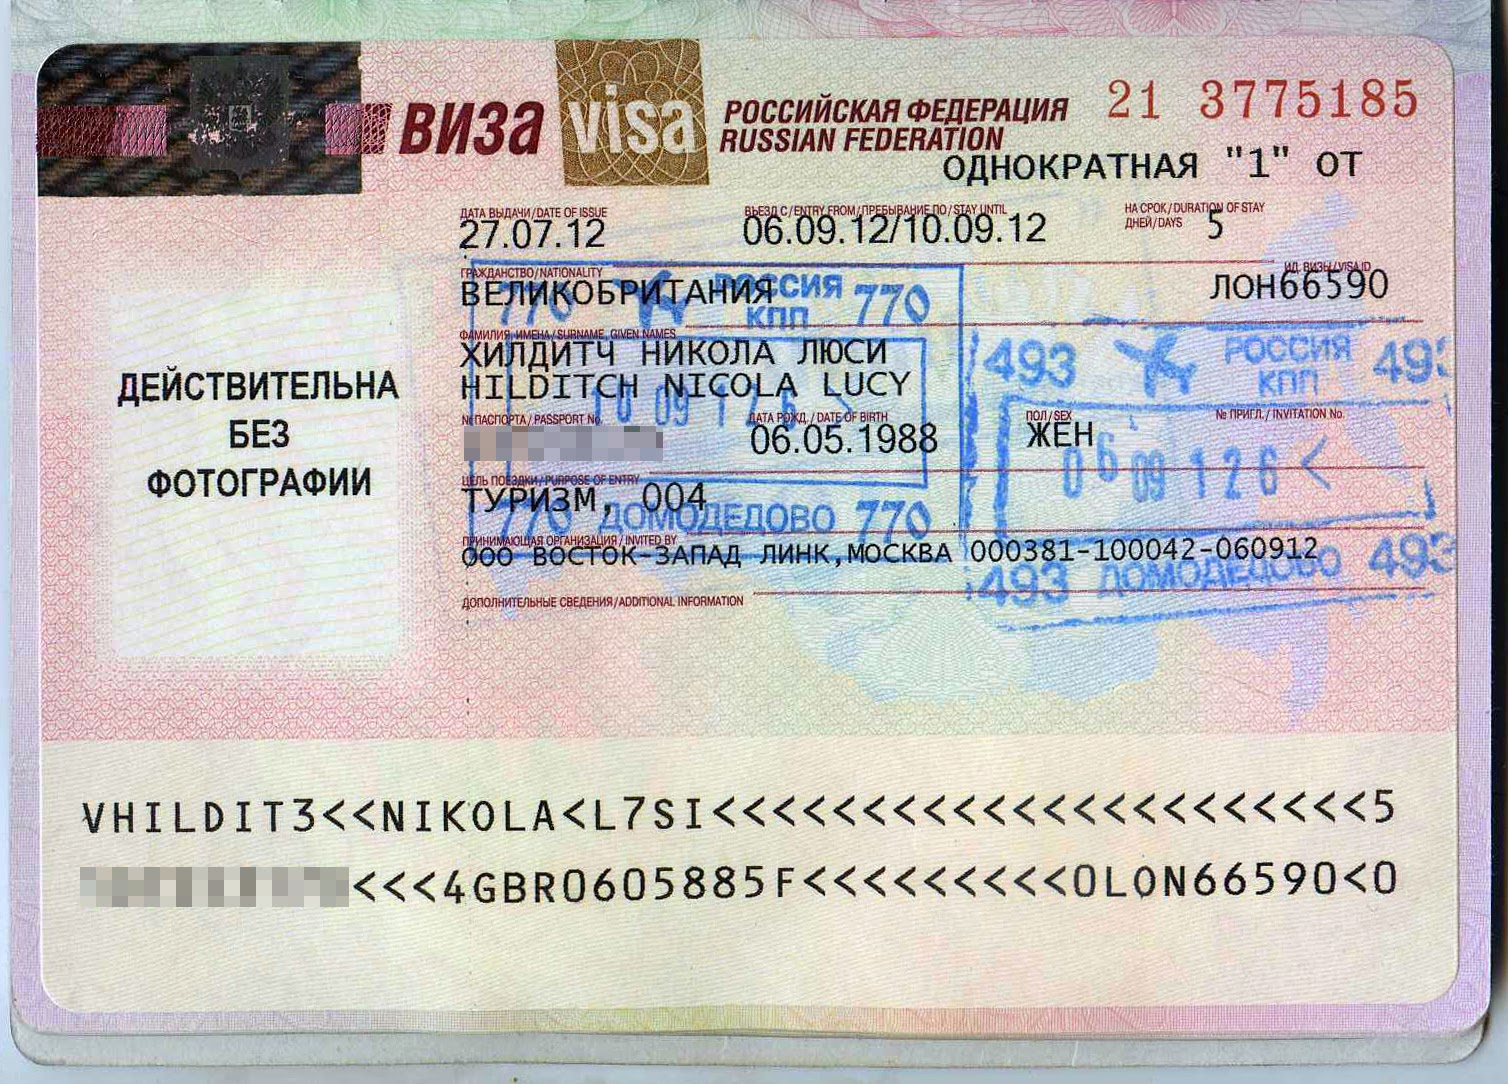 Russia, Moscow, russian visa, tourist visa, stamps, airport, domodedovo, application, how to apply for a russian visa, help applying for a russian visa, voucher, confirmation, invitation, form, passport, travel blog, travel advice, blogger, backpacker.